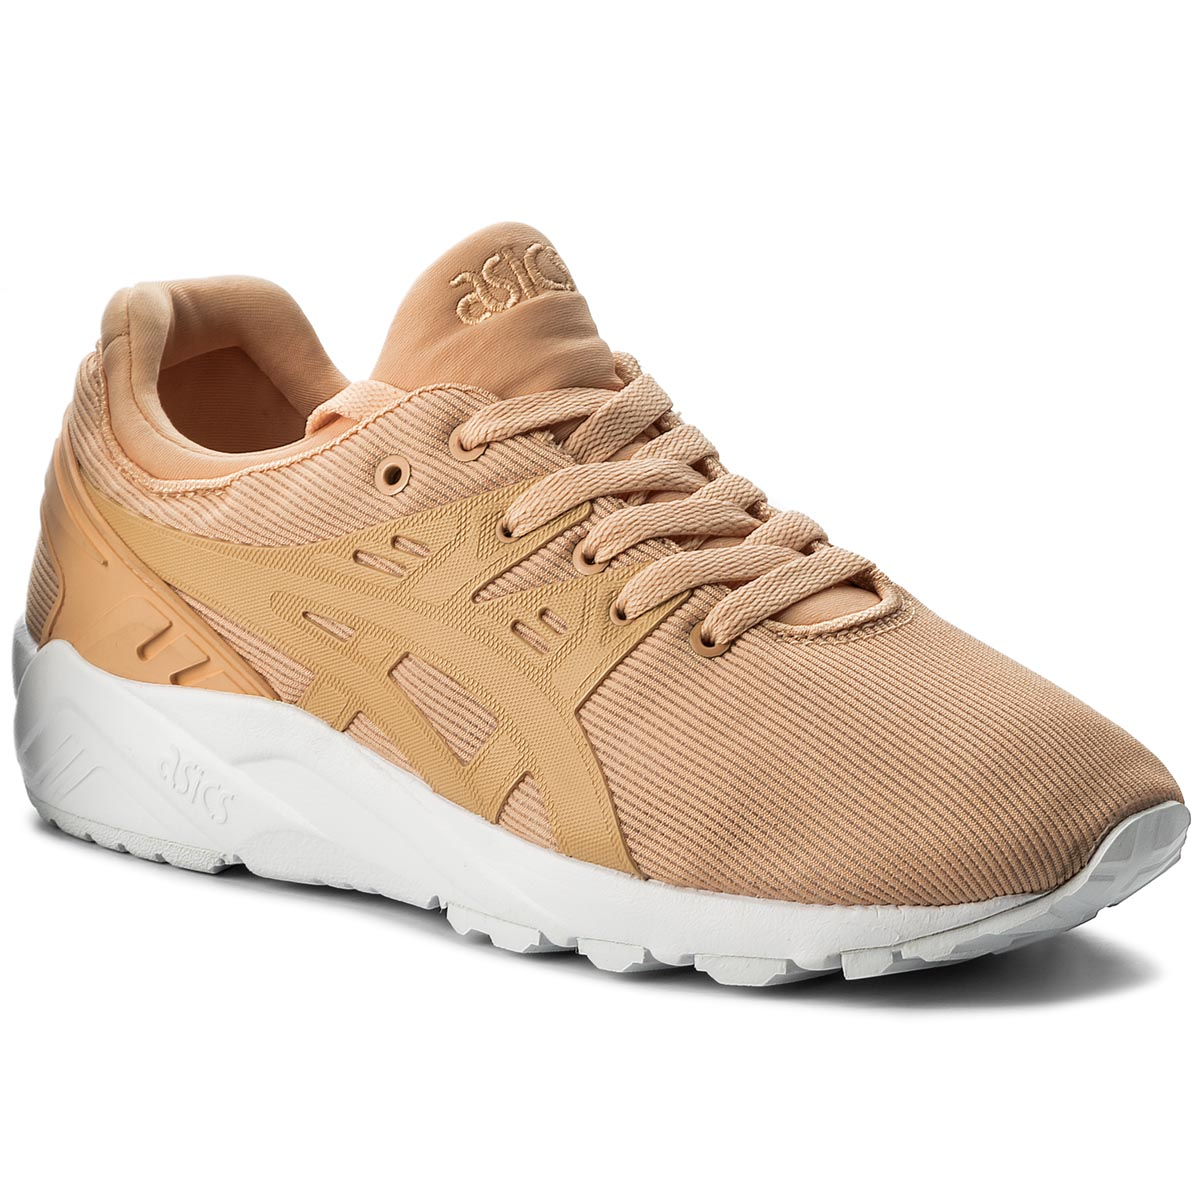 326cd795ce9e Sneakersy ASICS - TIGER Gel-Kayano Trainer Evo H823N Apricot Ice Apricot  Ice 9595